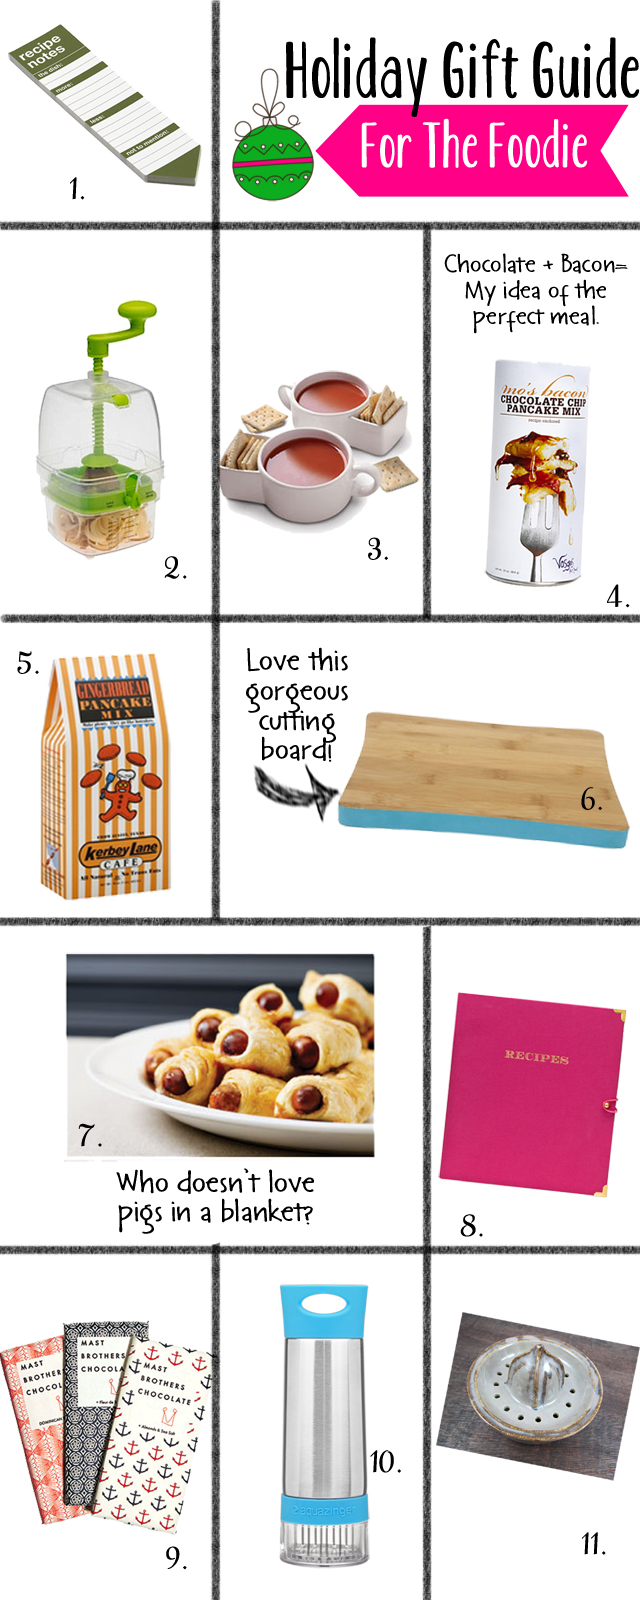 Gift Guide for the Foodie, Gifts from the Chef, Holiday Gift Guide